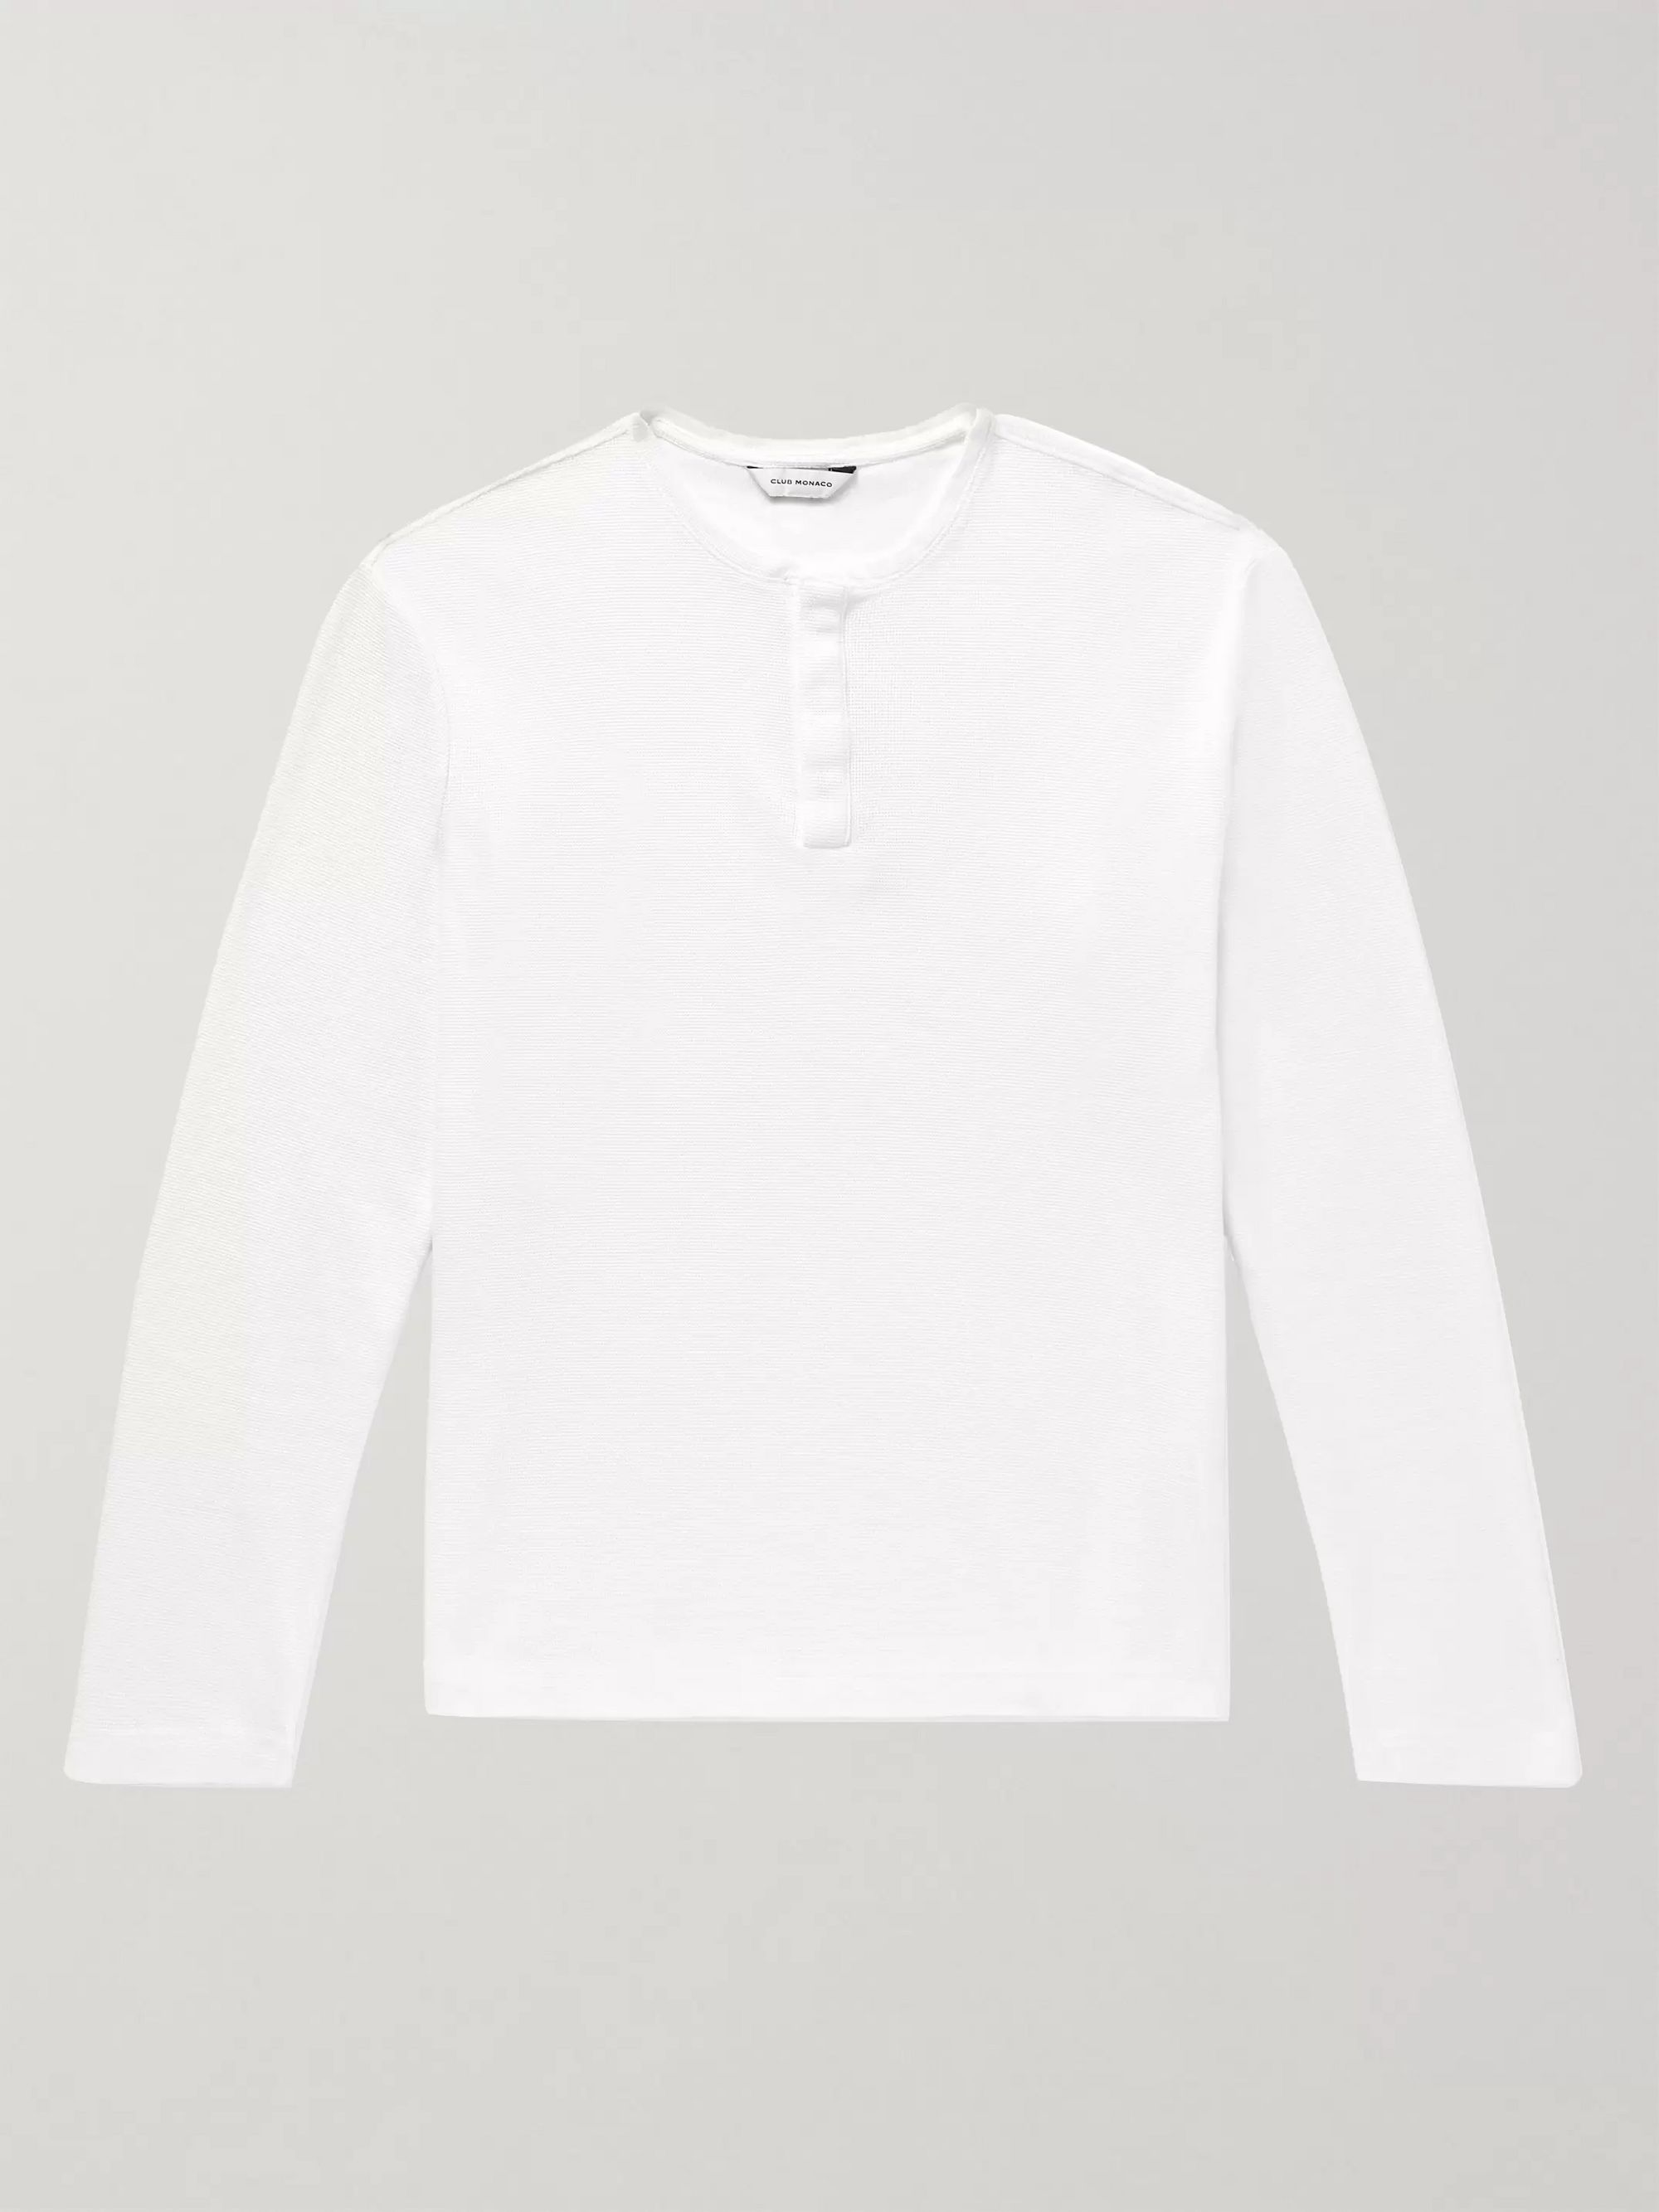 Club Monaco Waffle-Knit Cotton-Jersey Henley T-Shirt